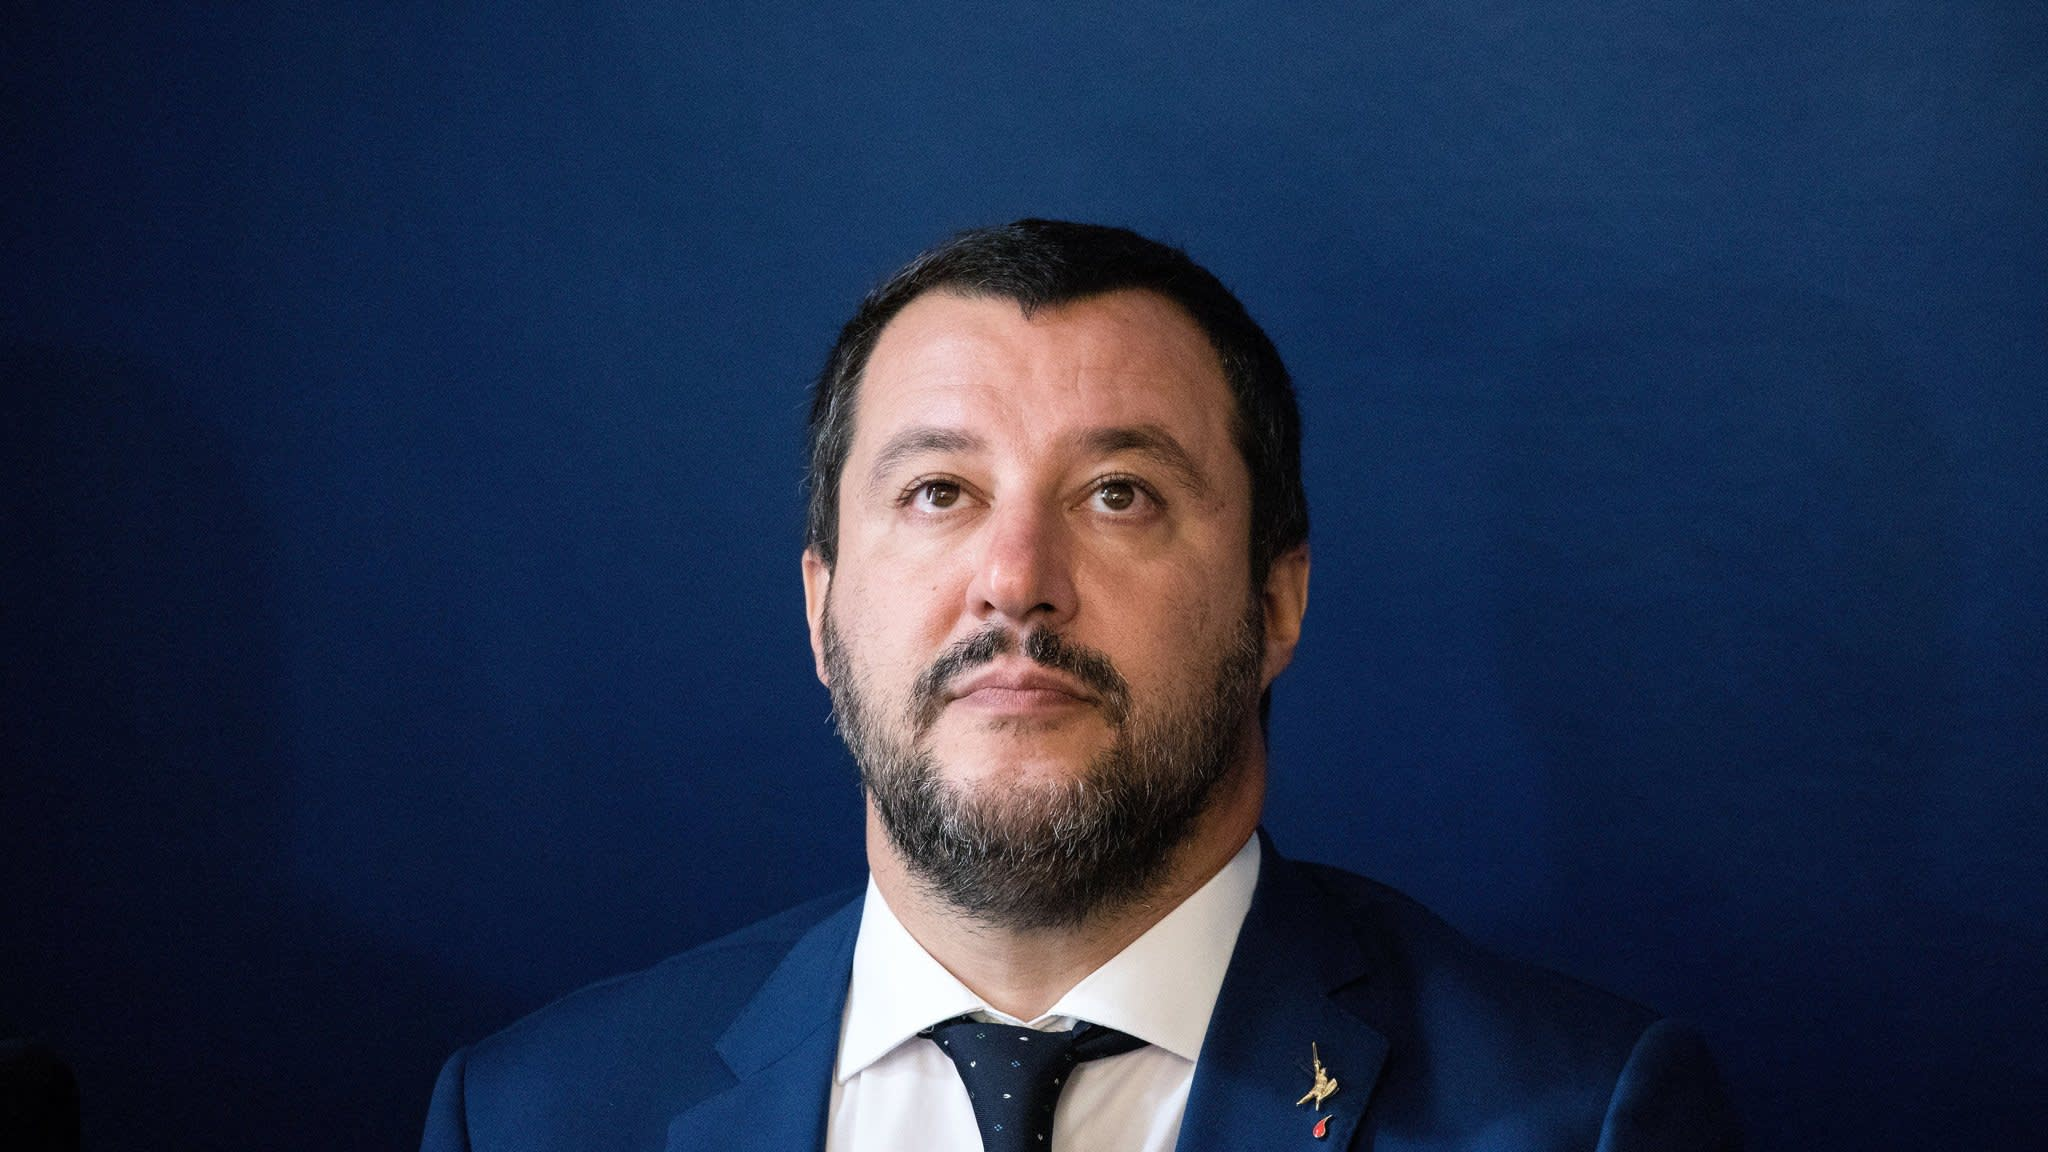 Salvini's budget fight with Brussels rattles investors